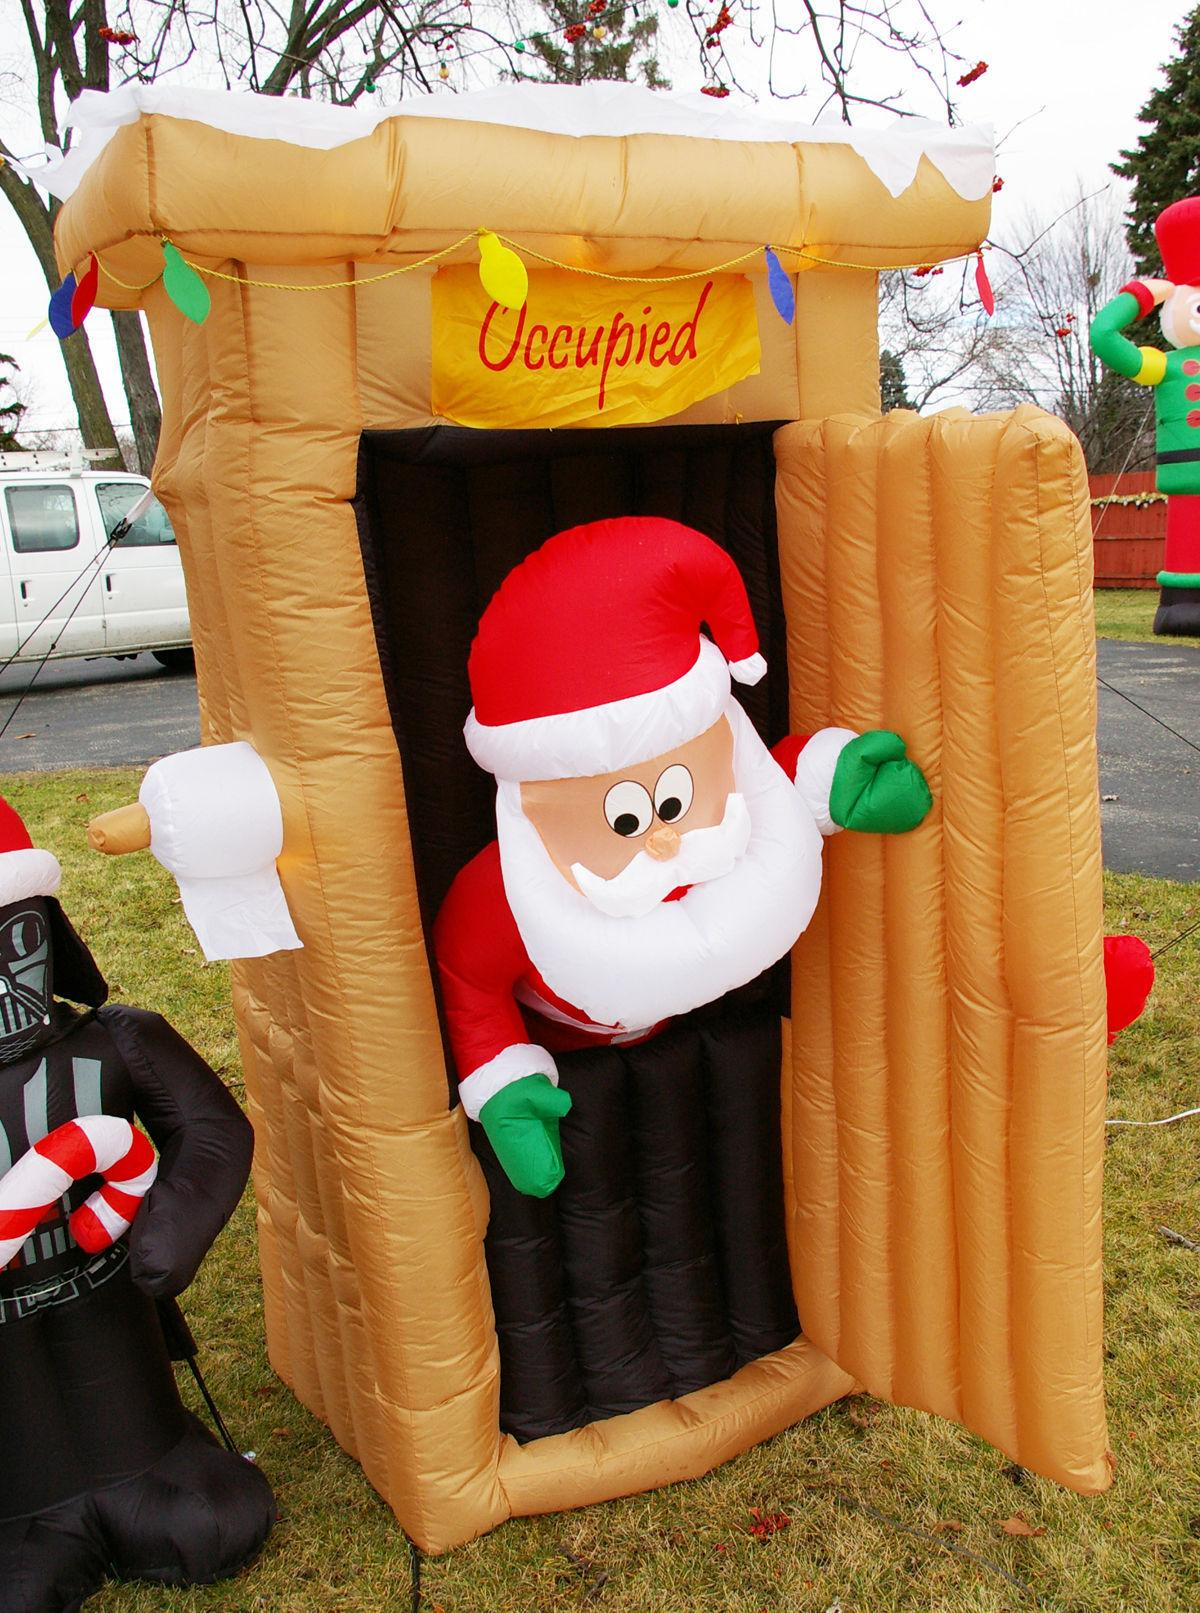 Holiday Blow Up Inflatable Decorations A Christmastime Hit - Regional News